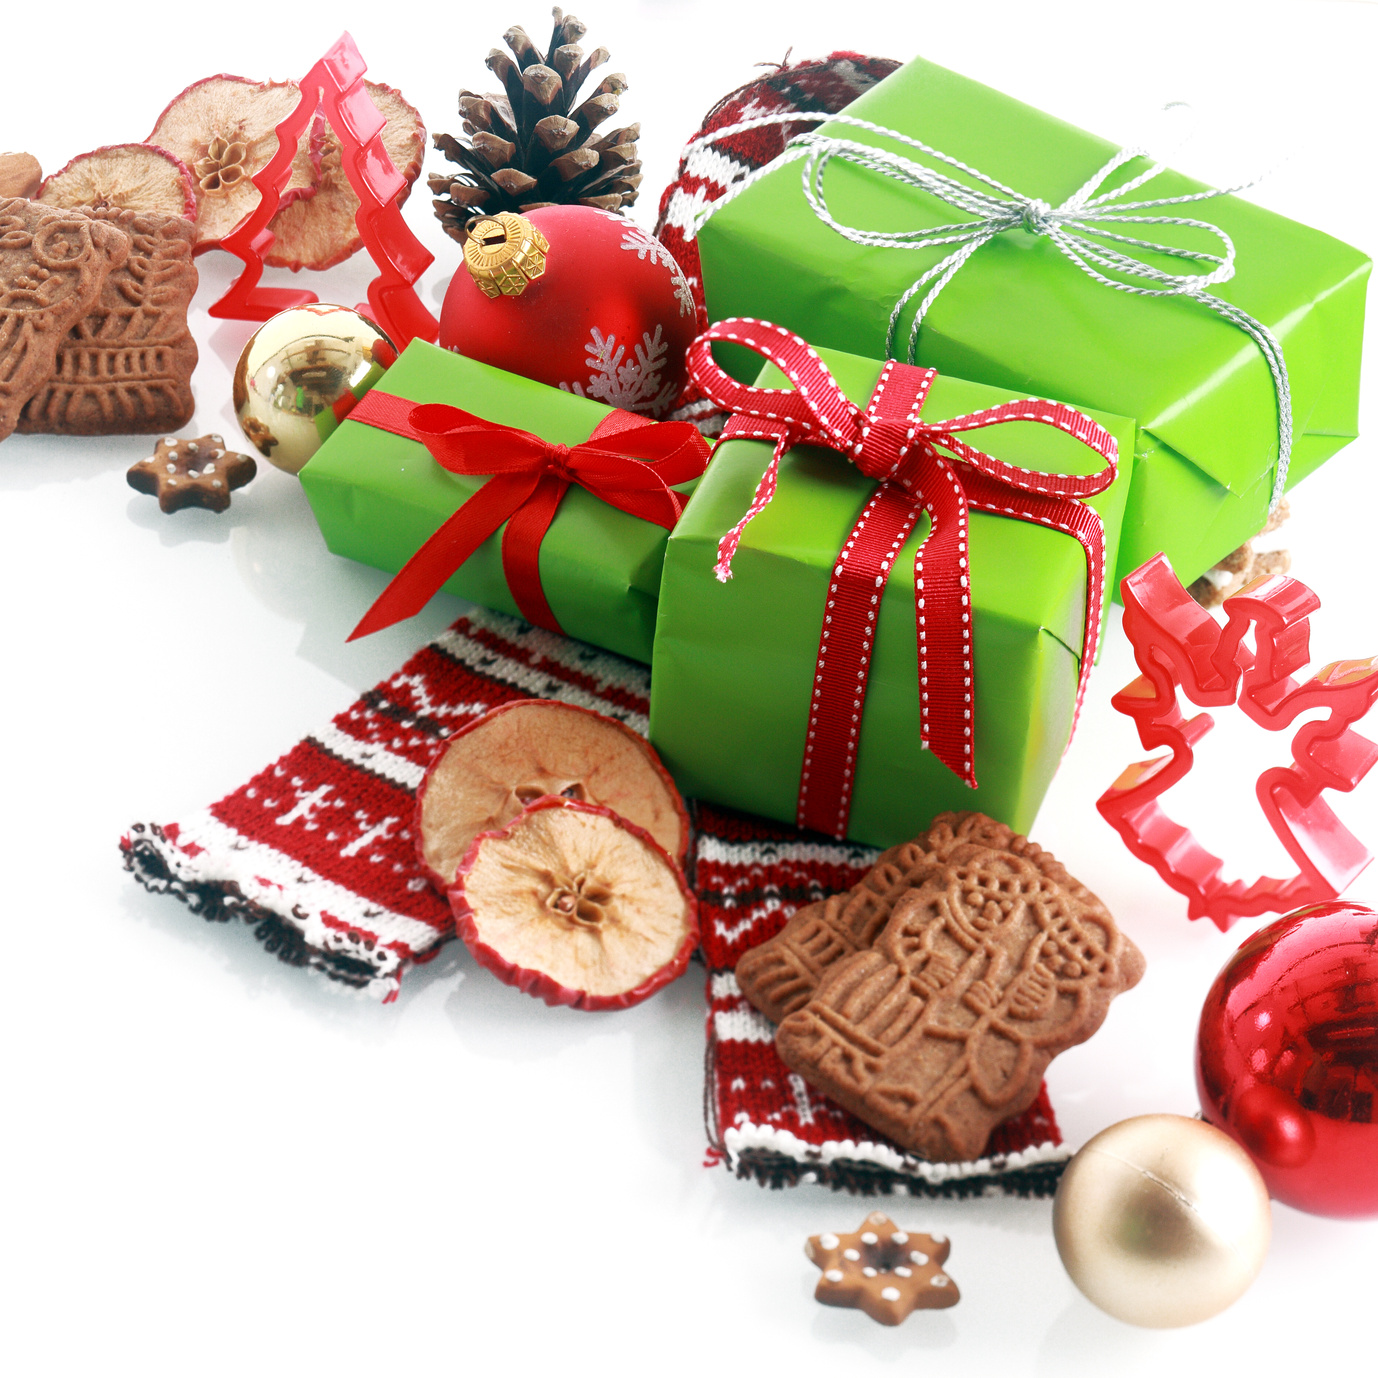 Colorful red and gree themed Christmas still life